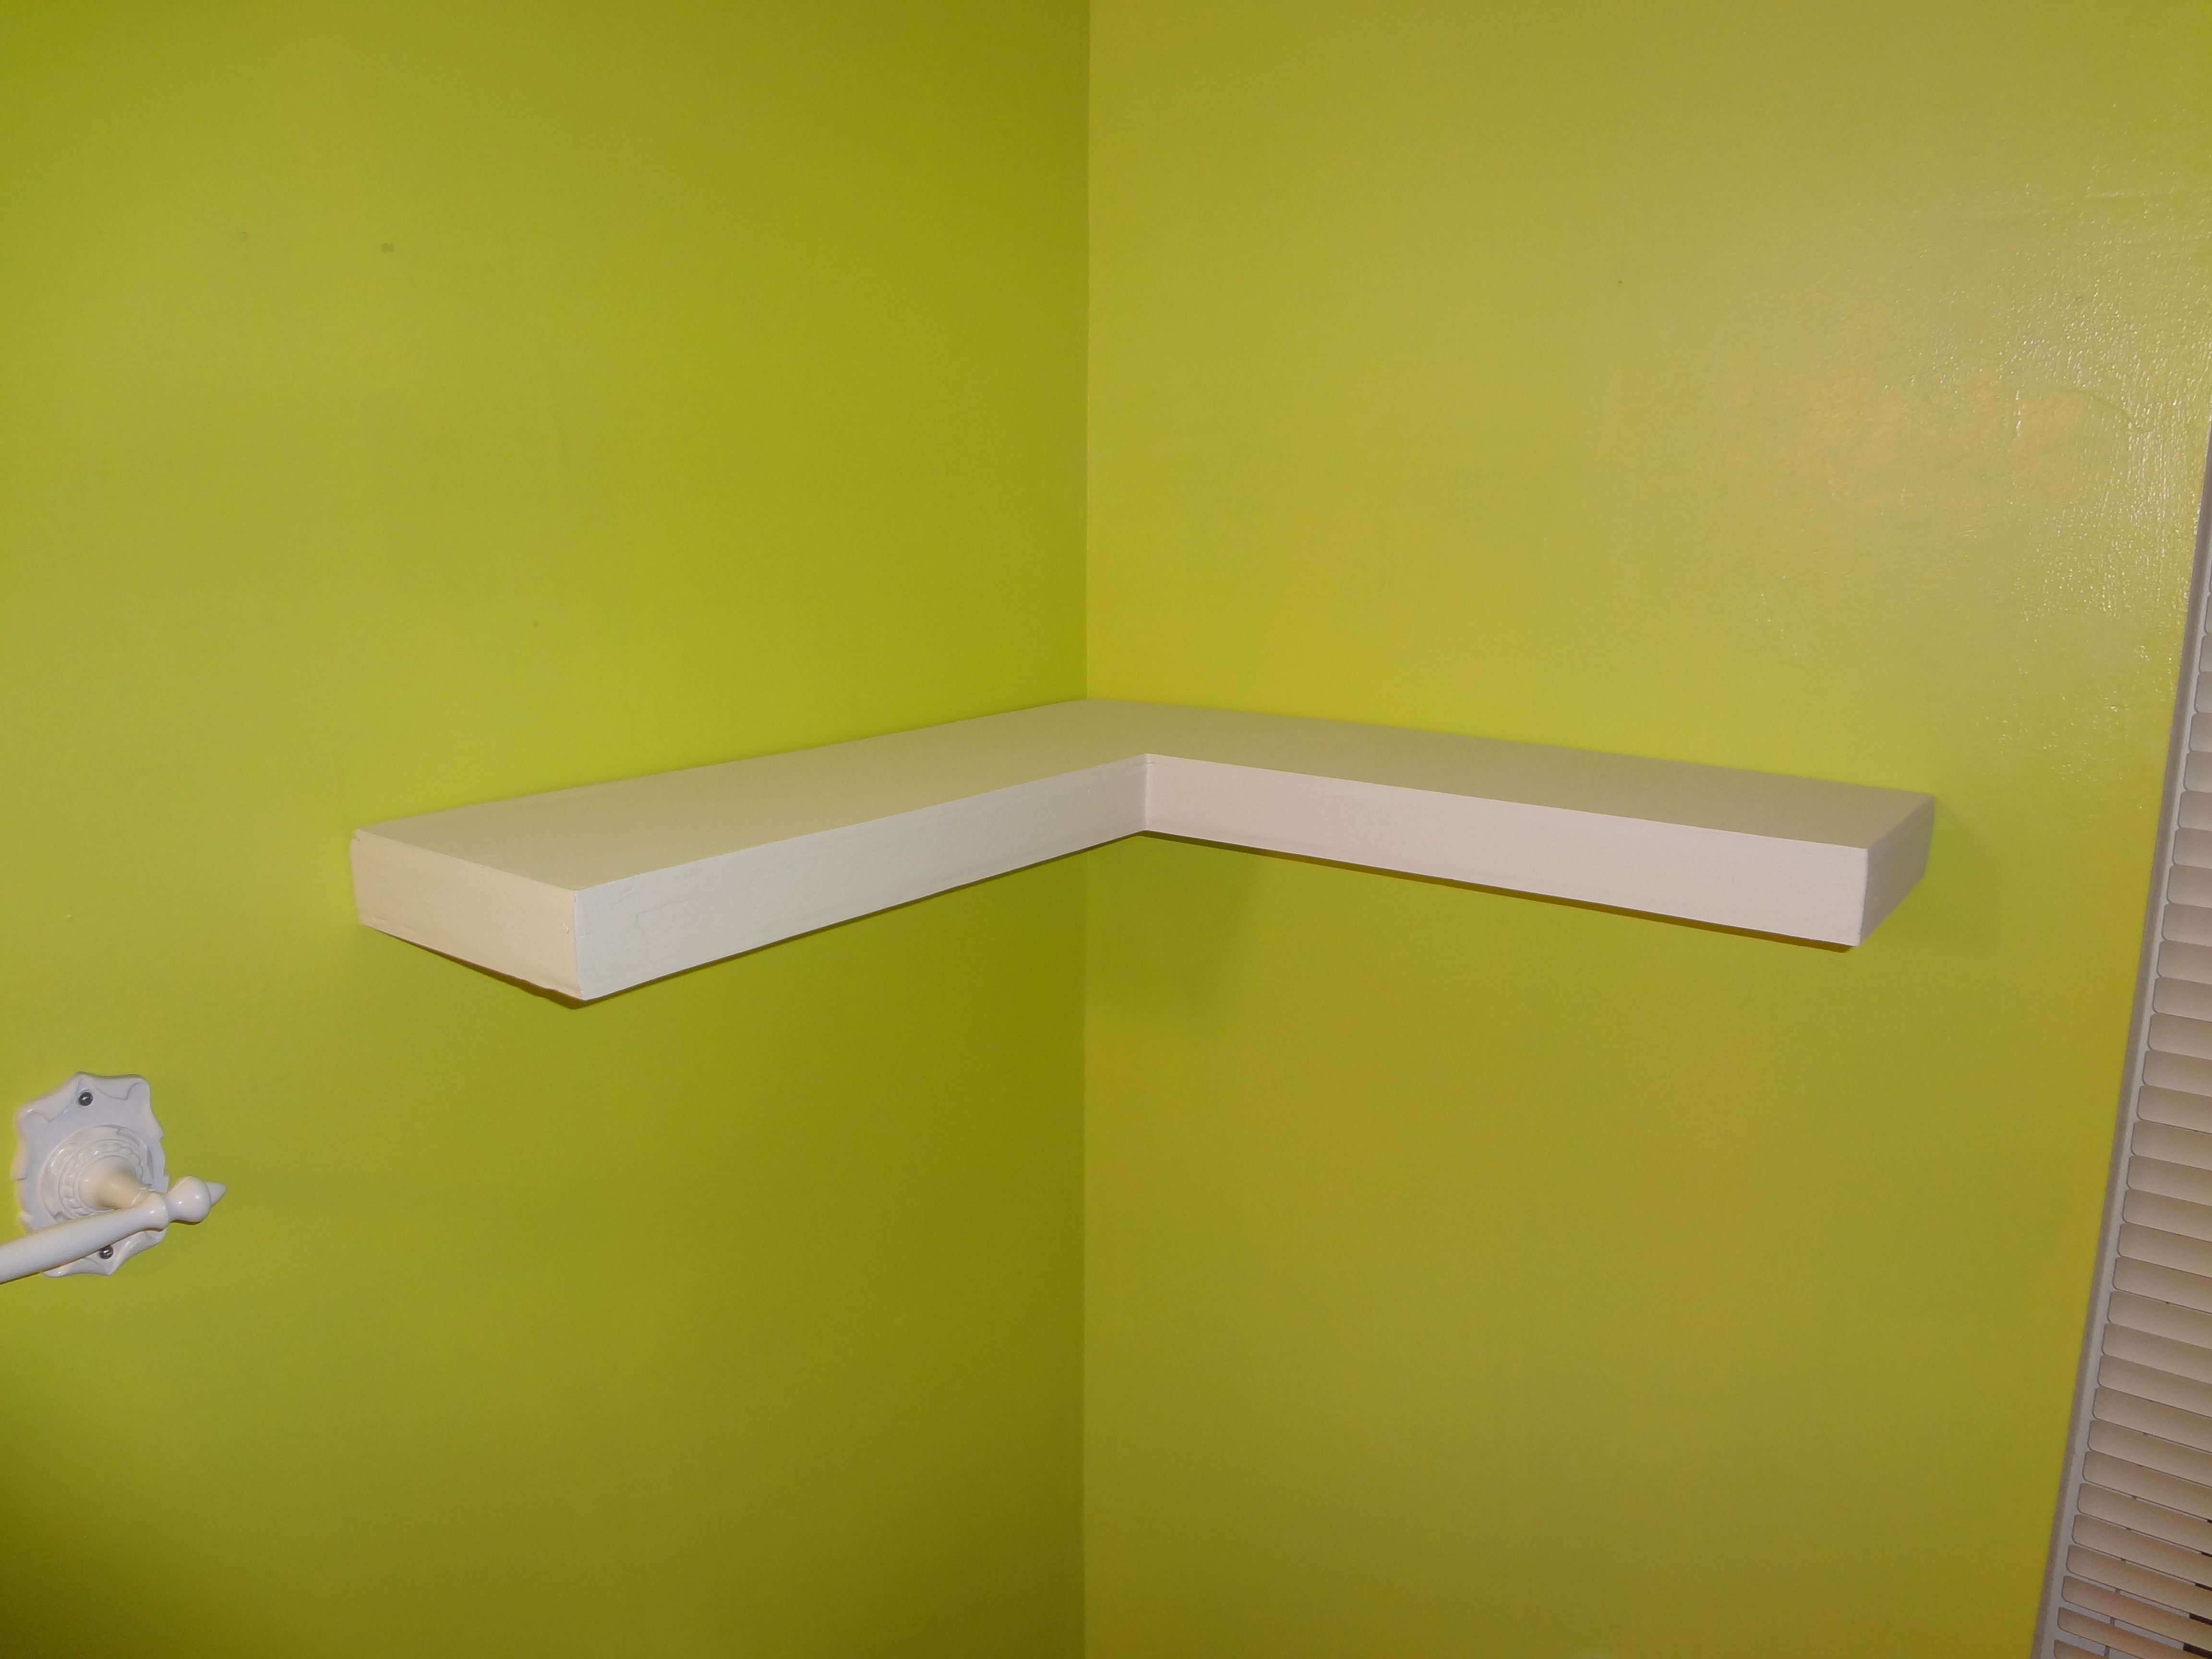 Floating Corner Shelf In White Wood Materials Near The Window And Green Colored Wall Home Office Interior Pixels